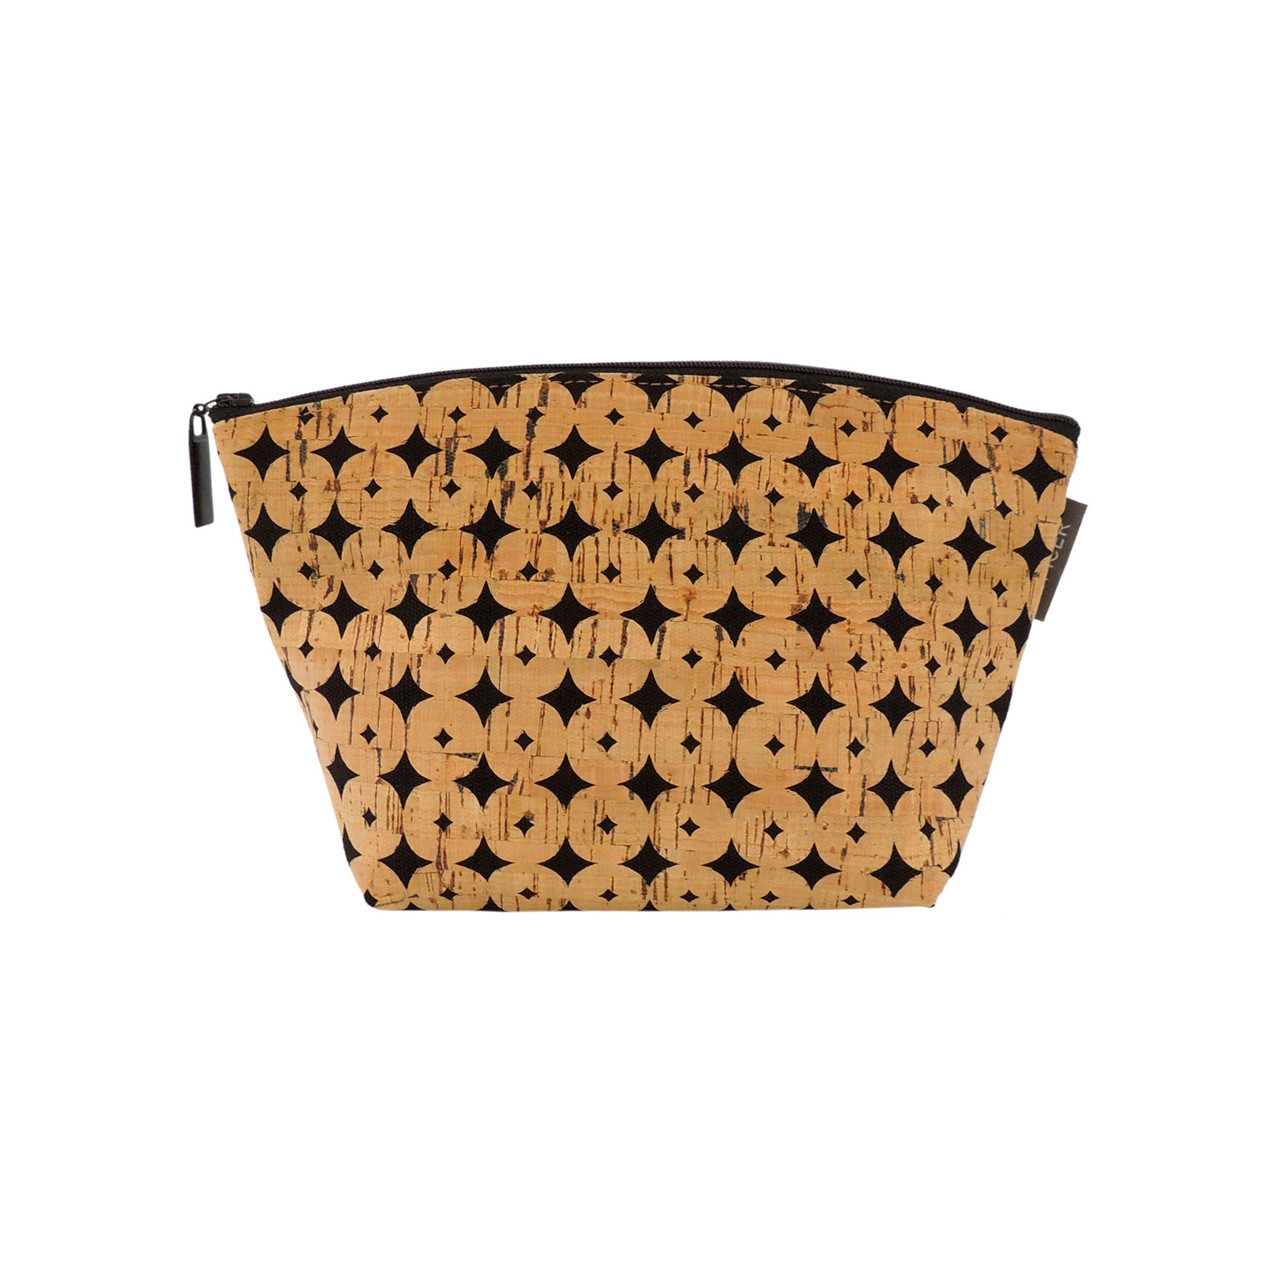 Large Standing Pouch in Black Cork Dots